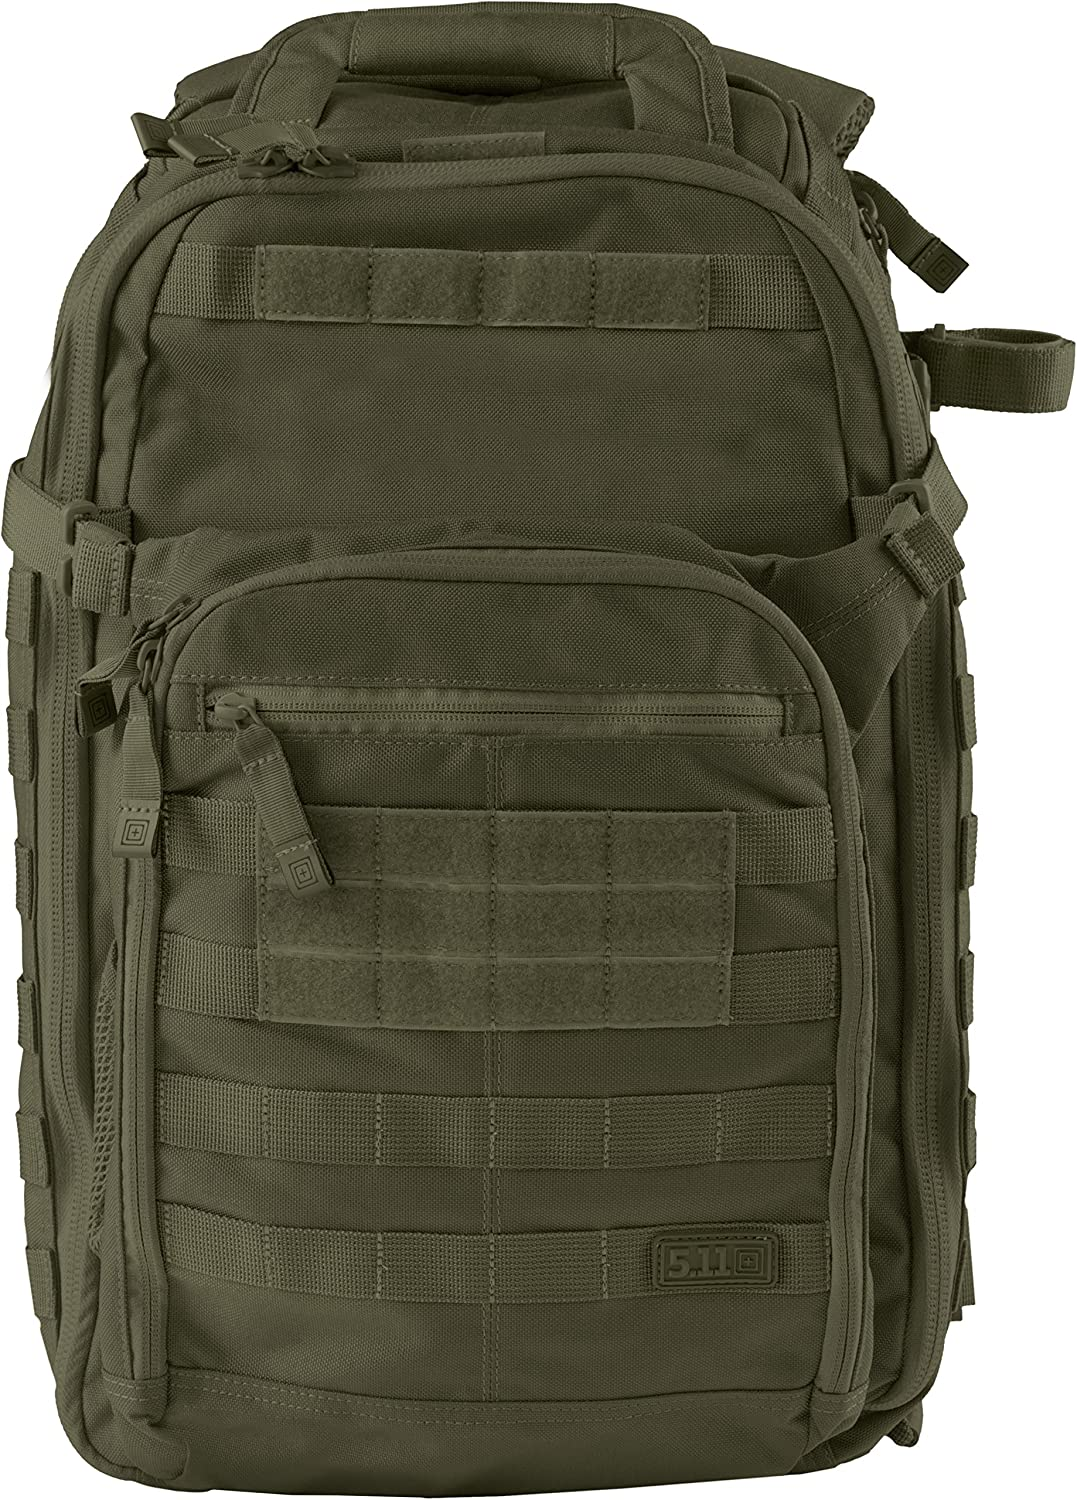 5.11 Tactical All Hazards Prime Backpack w  Molle Webbing